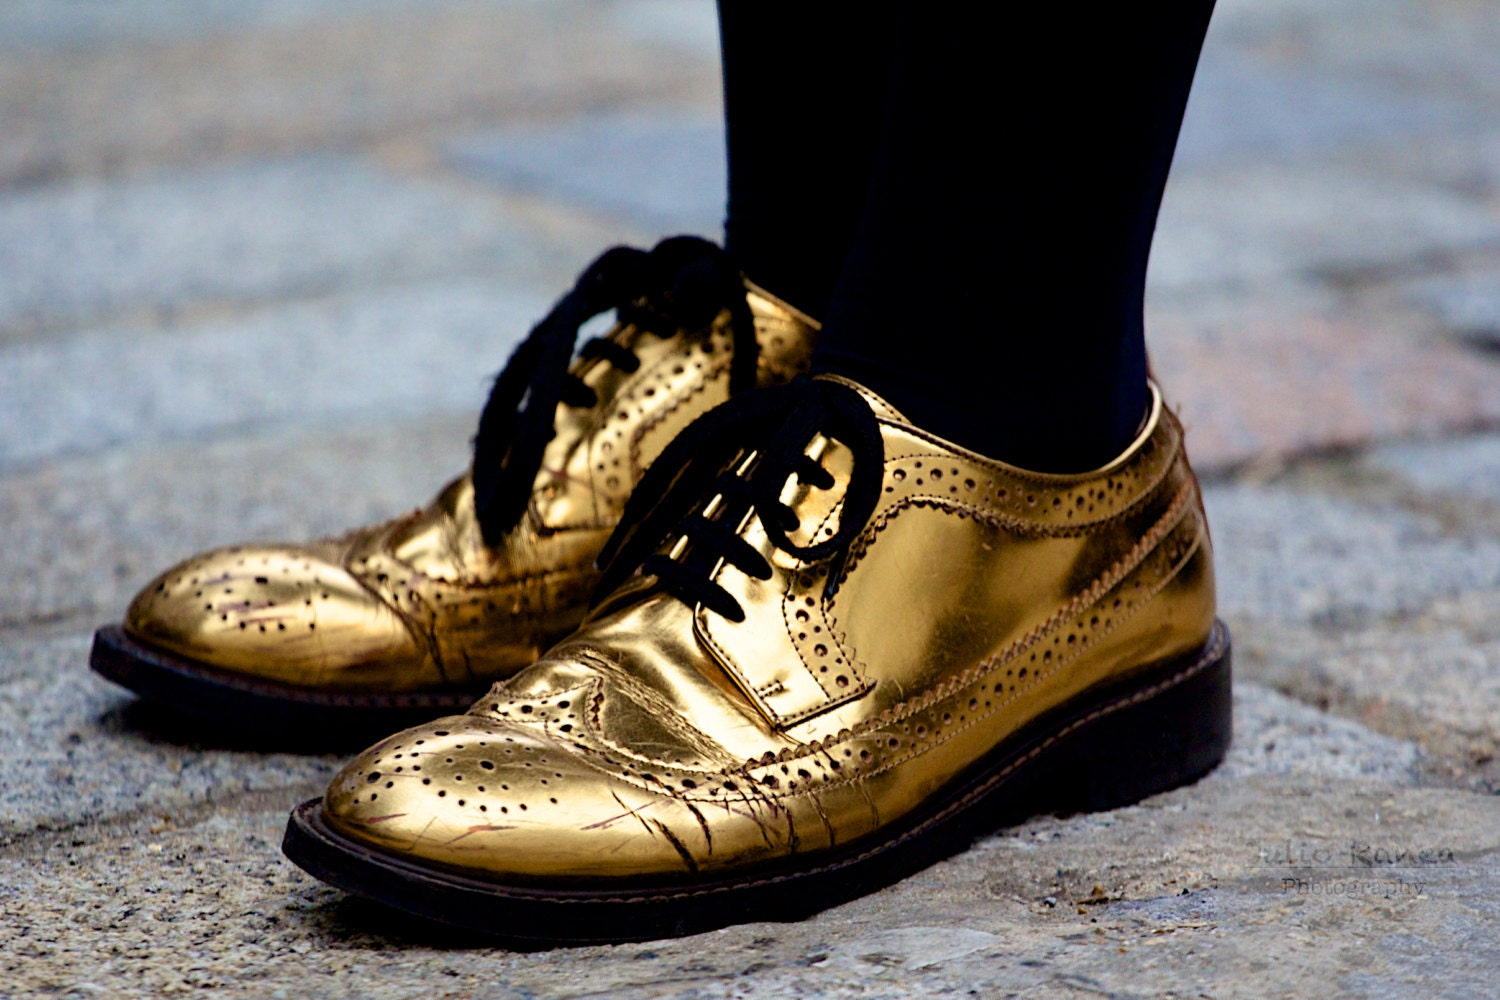 Photo print: Golden brogues at London Fashion Week. Fashion photography. photography of shoes. - Juliophotos